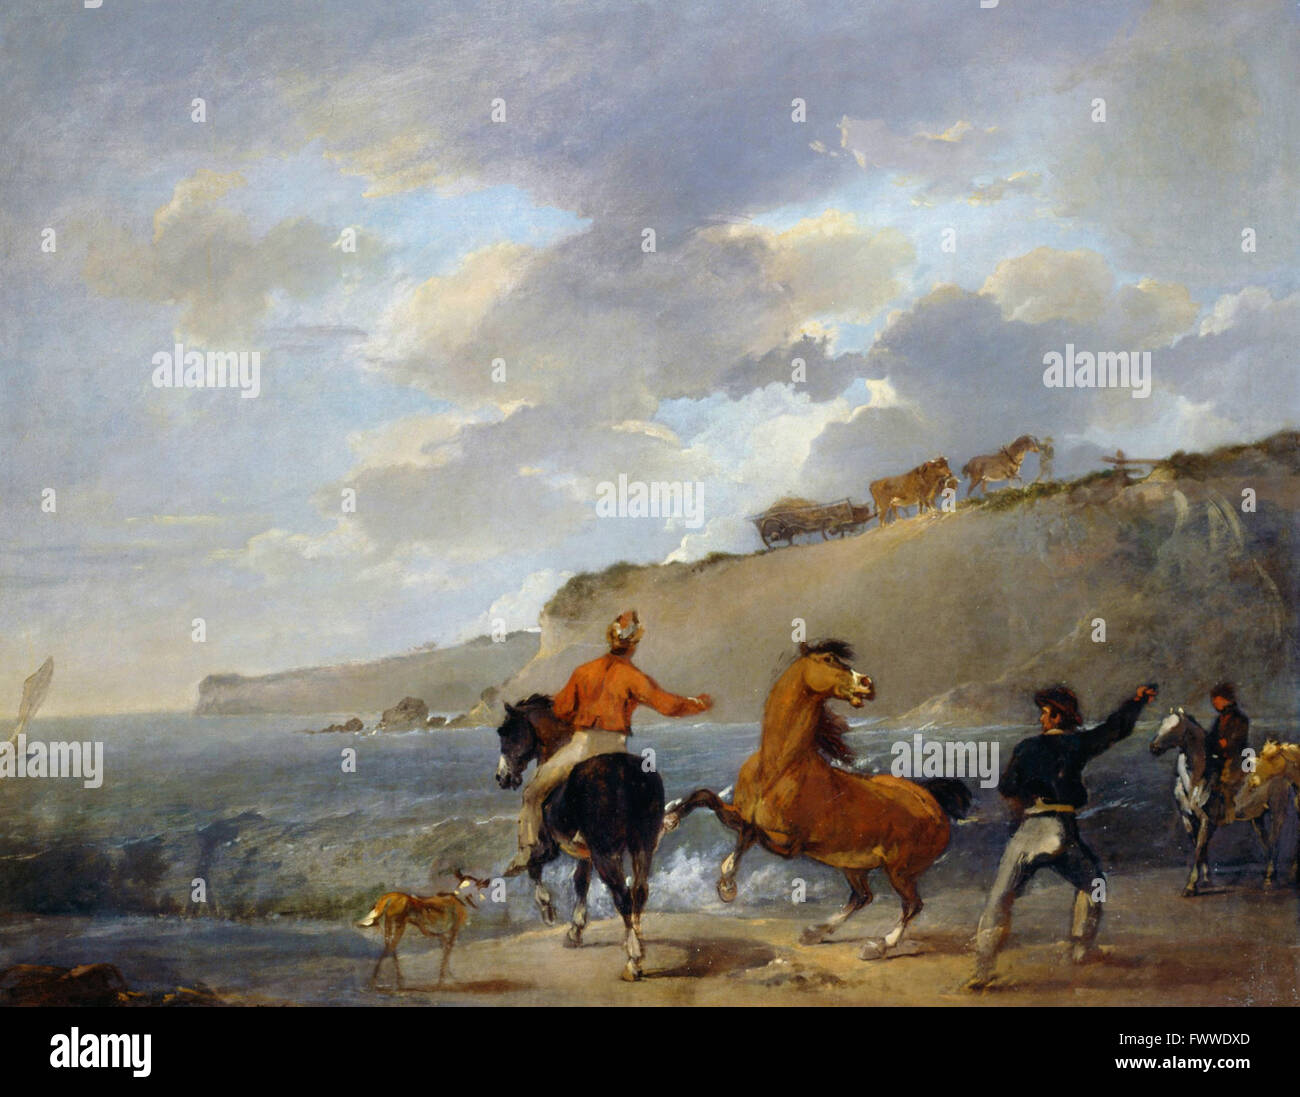 Bourgeois, Sir Peter Francis - Sea Shore with Rearing Horsry - Stock Image